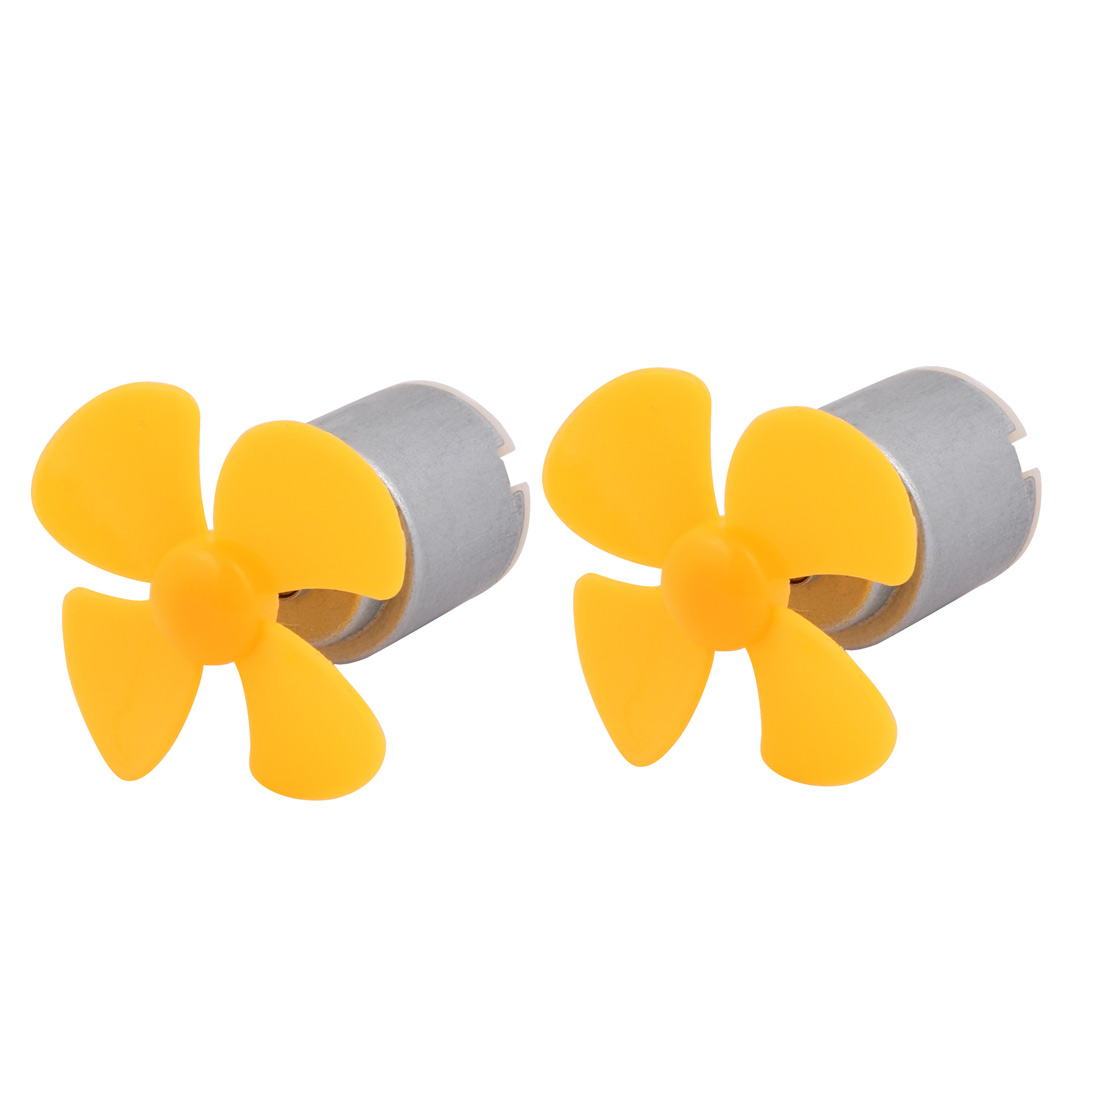 2pcs DC 3V 0.13A 6600RPM Strong Force Motor 4 Vanes 40mm Yellow Propeller for RC Aircraft